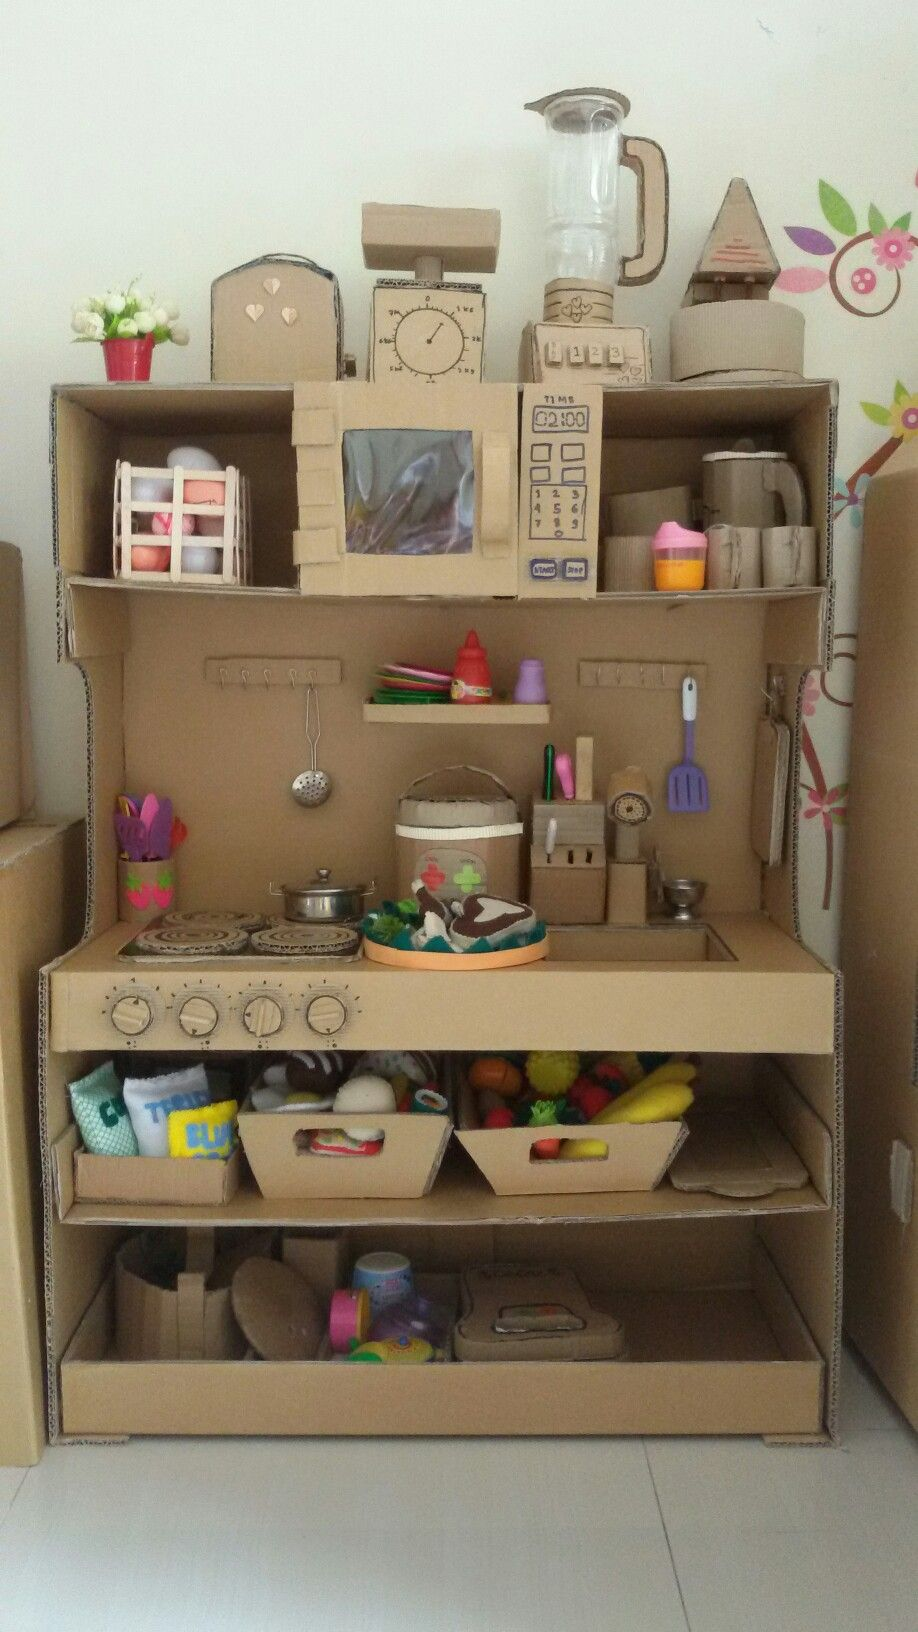 Cardboard kitchen playset diy crafts pinterest cardboard cardboard kitchen playset mais solutioingenieria Image collections